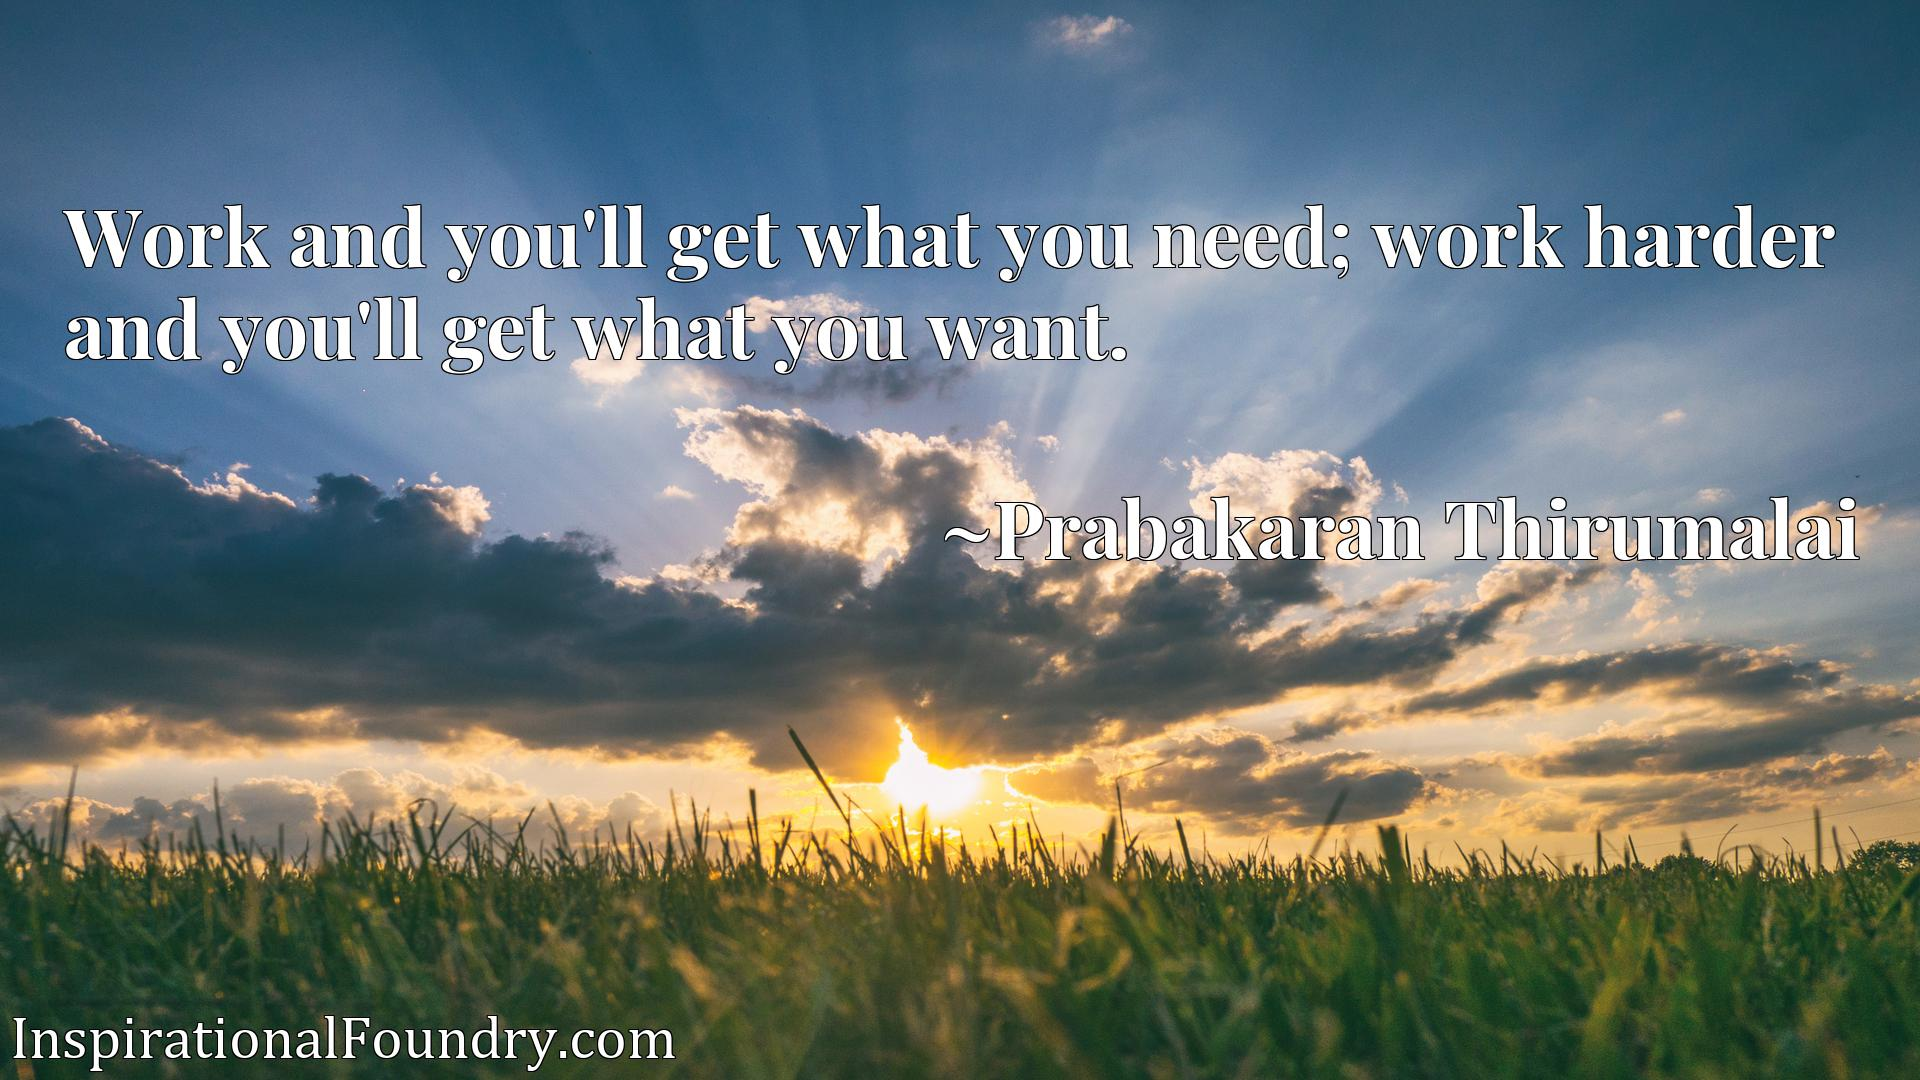 Work and you'll get what you need; work harder and you'll get what you want.